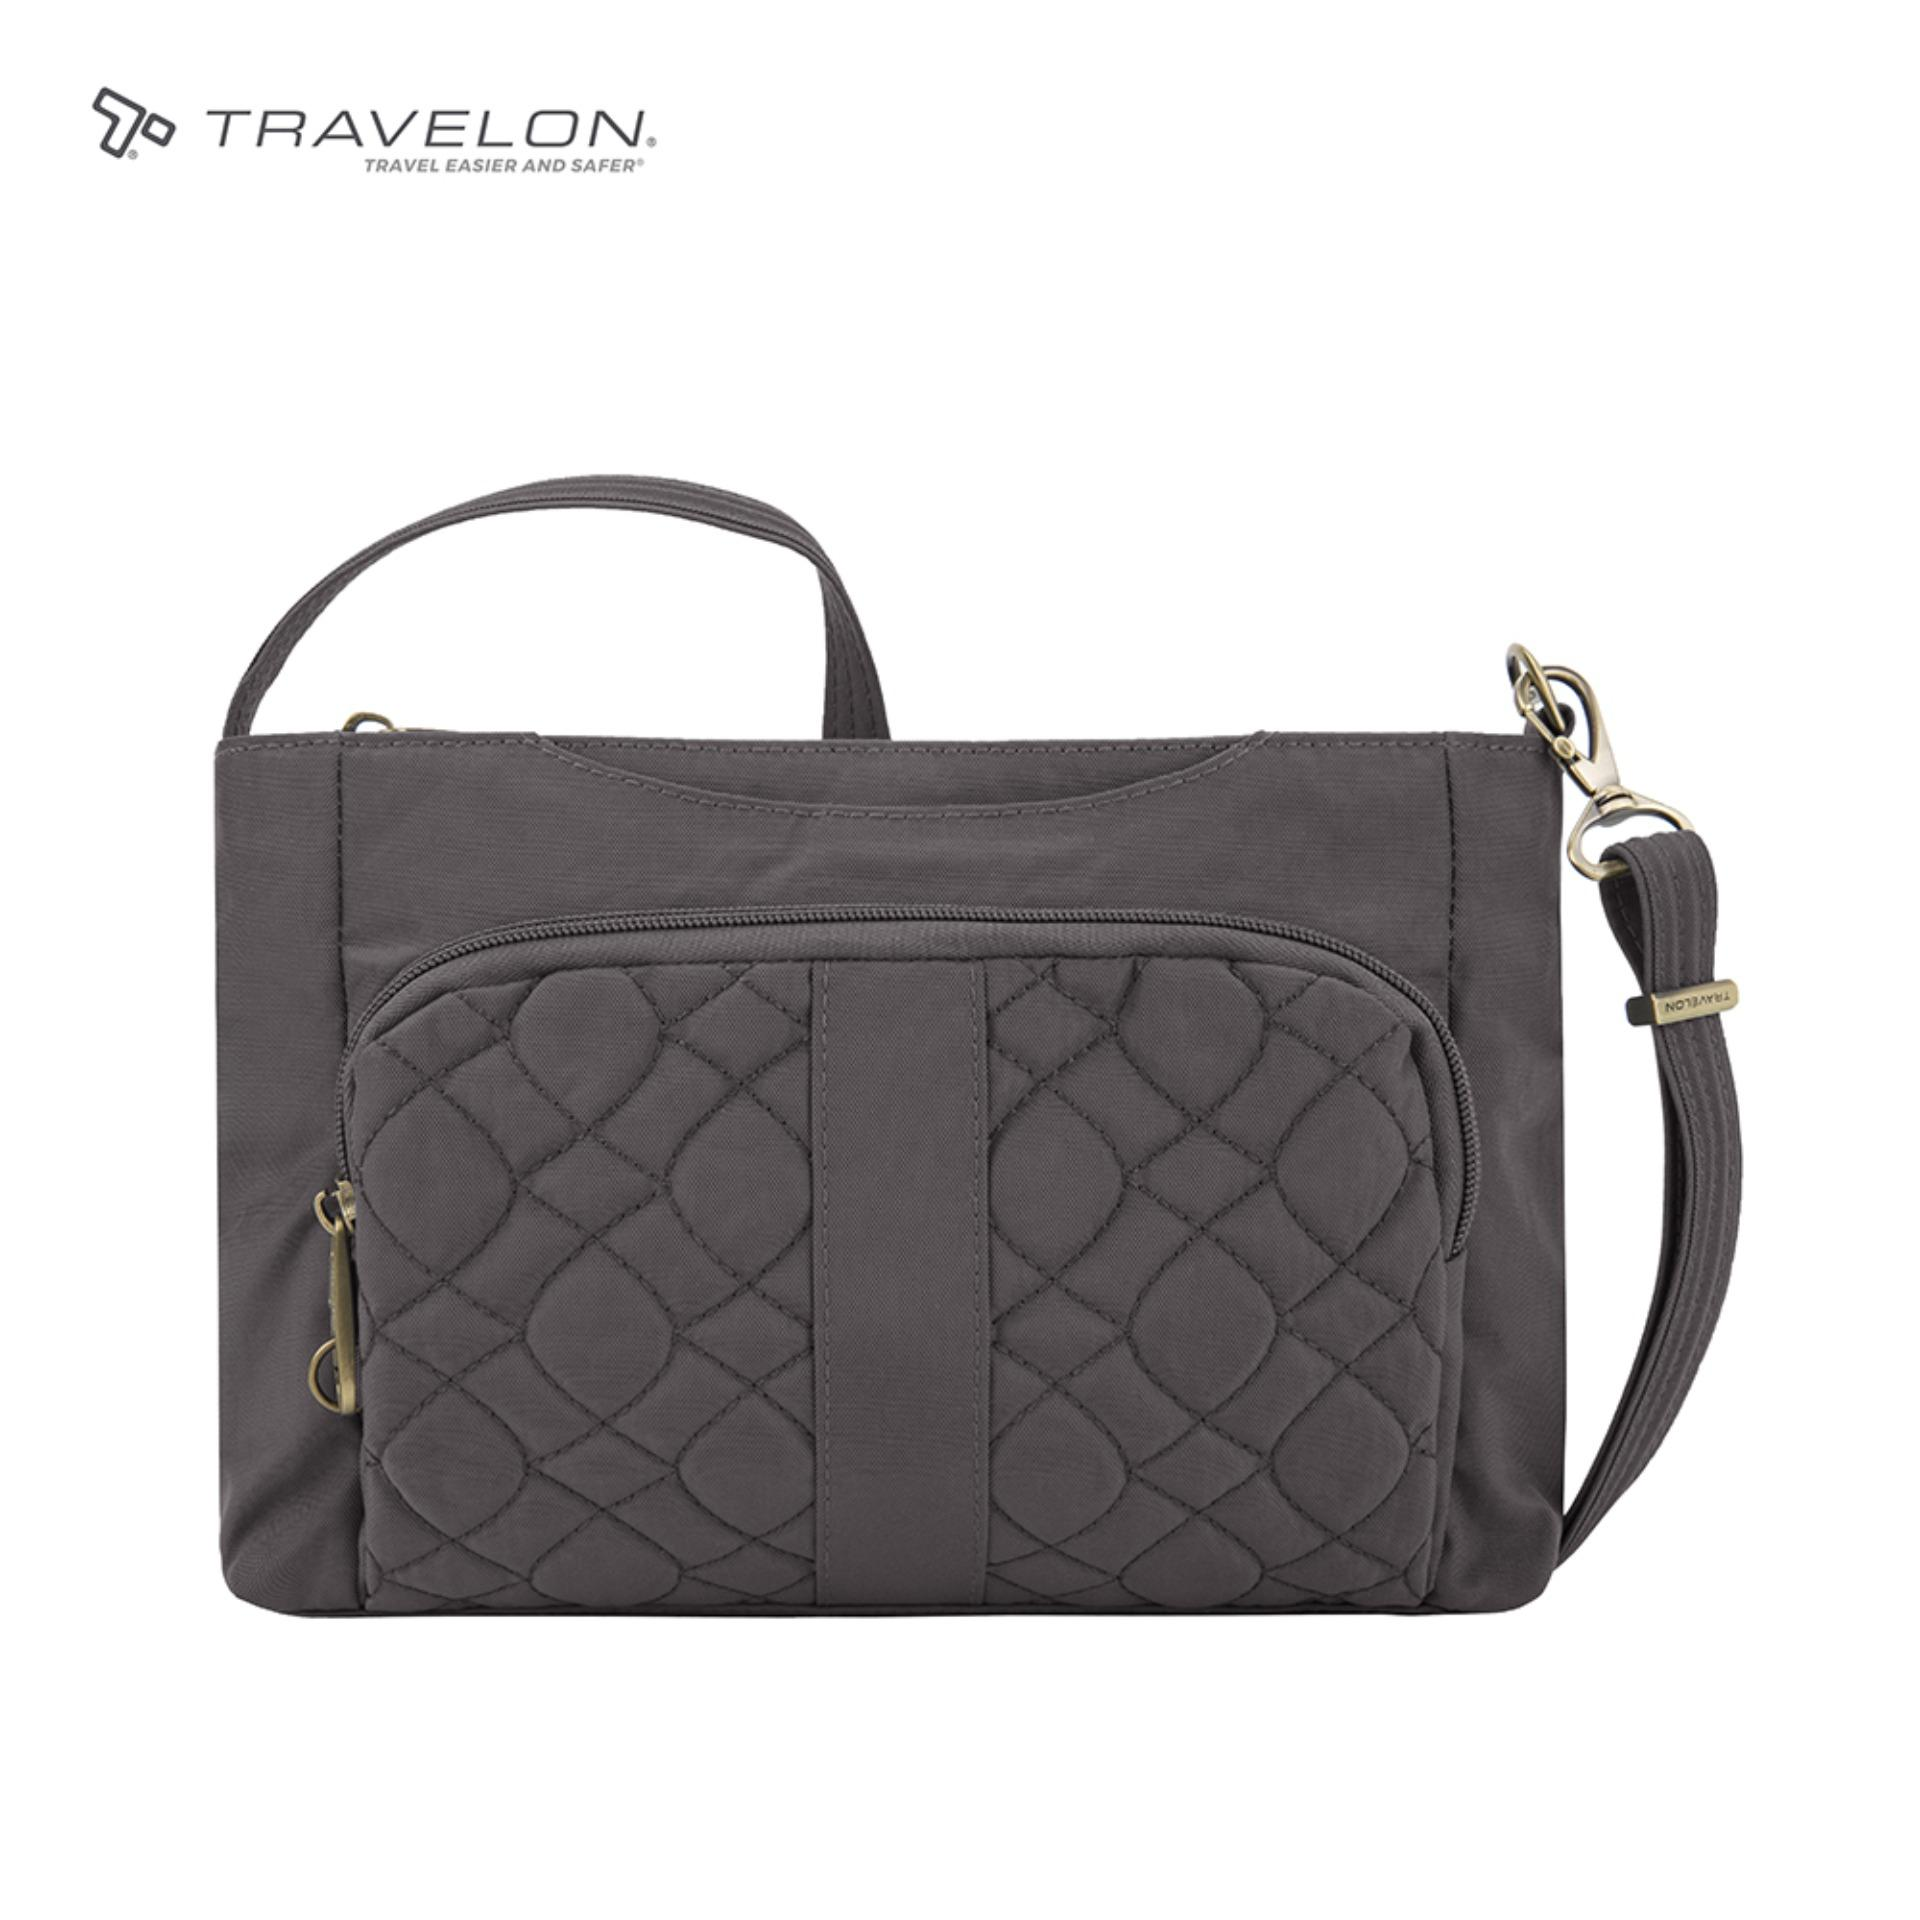 3bfa43e3fae9 Travelon Signature Quilted EW Slim Anti-theft RFID protected Womens Safety  Travel Bag